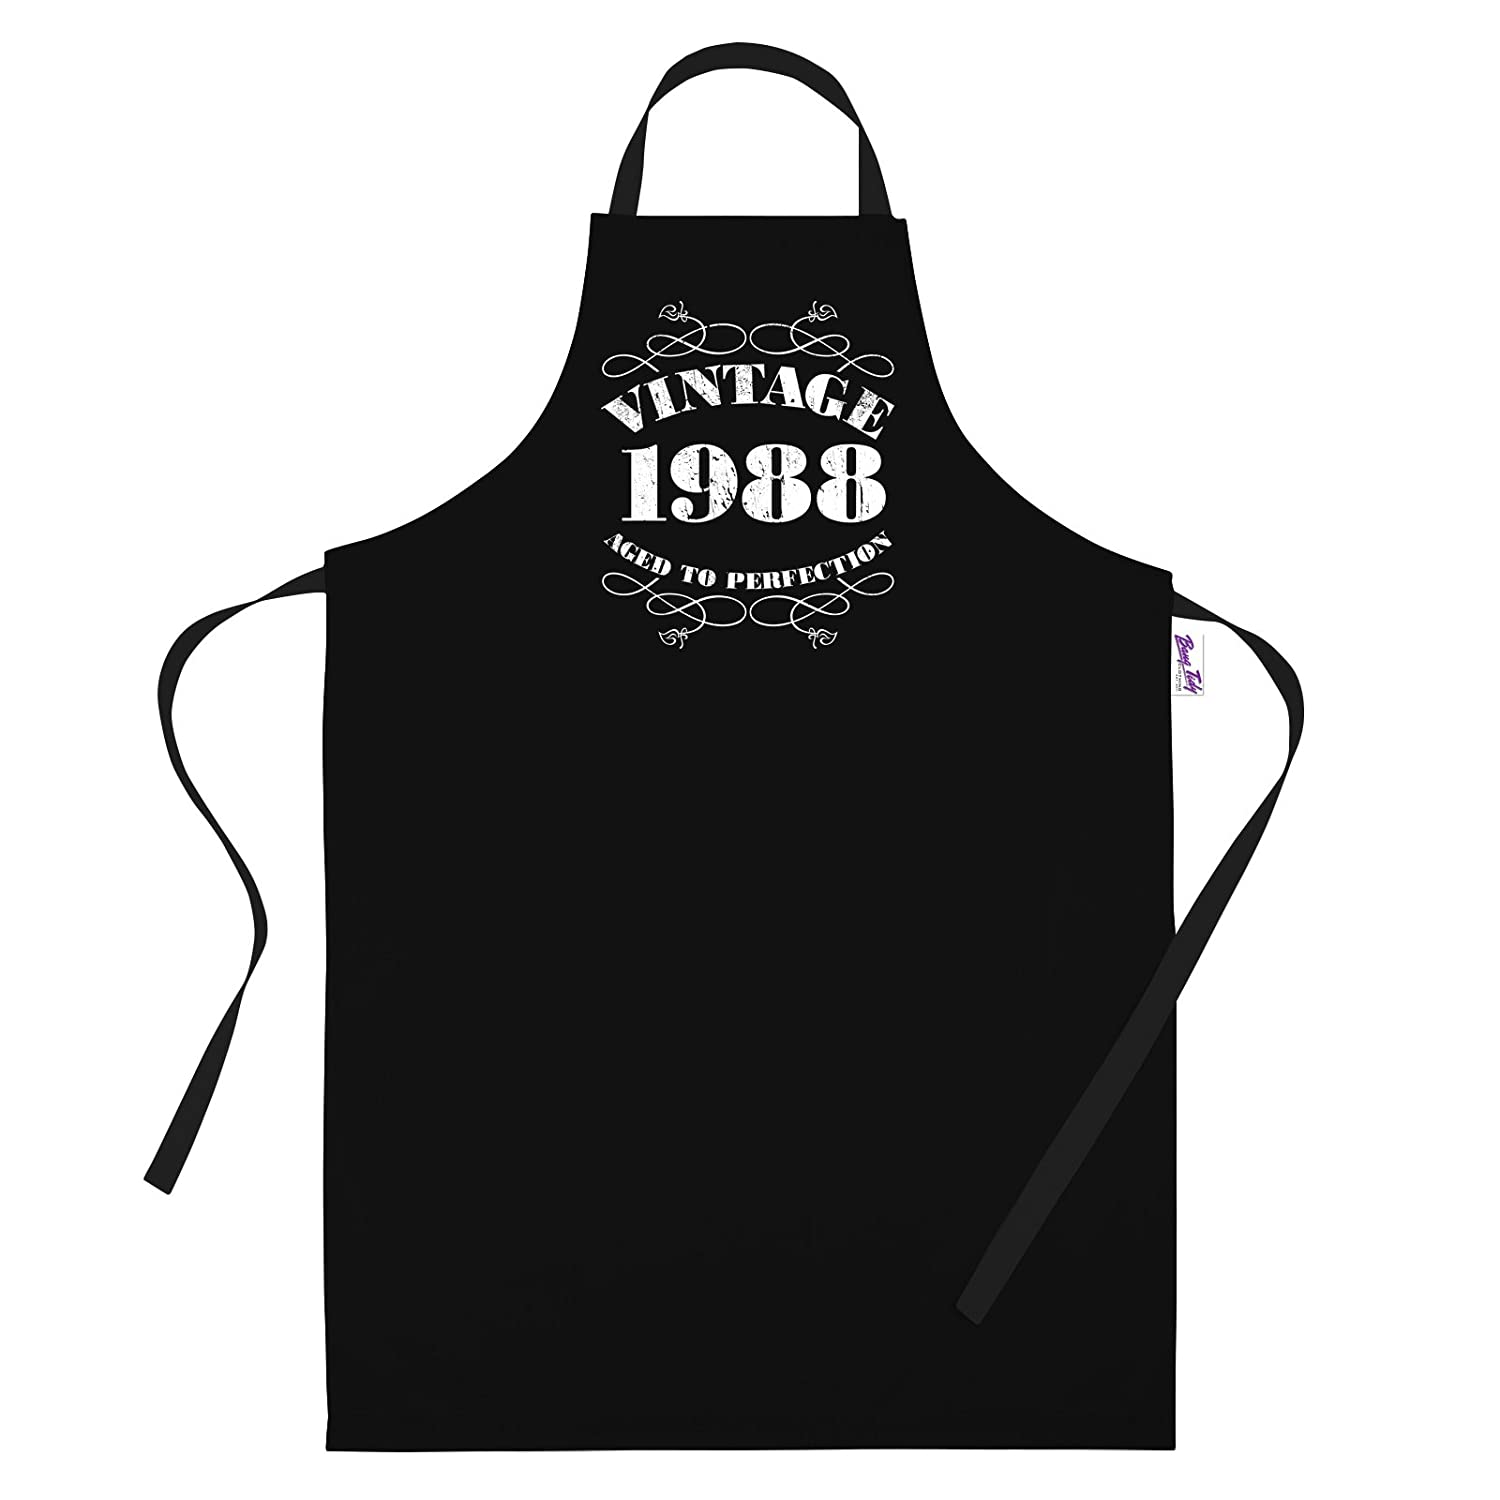 Men's 30th Birthday Gift Apron Vintage 1988 Aprons 30th Birthday Gifts … BANG TIDY CLOTHING RA469P1